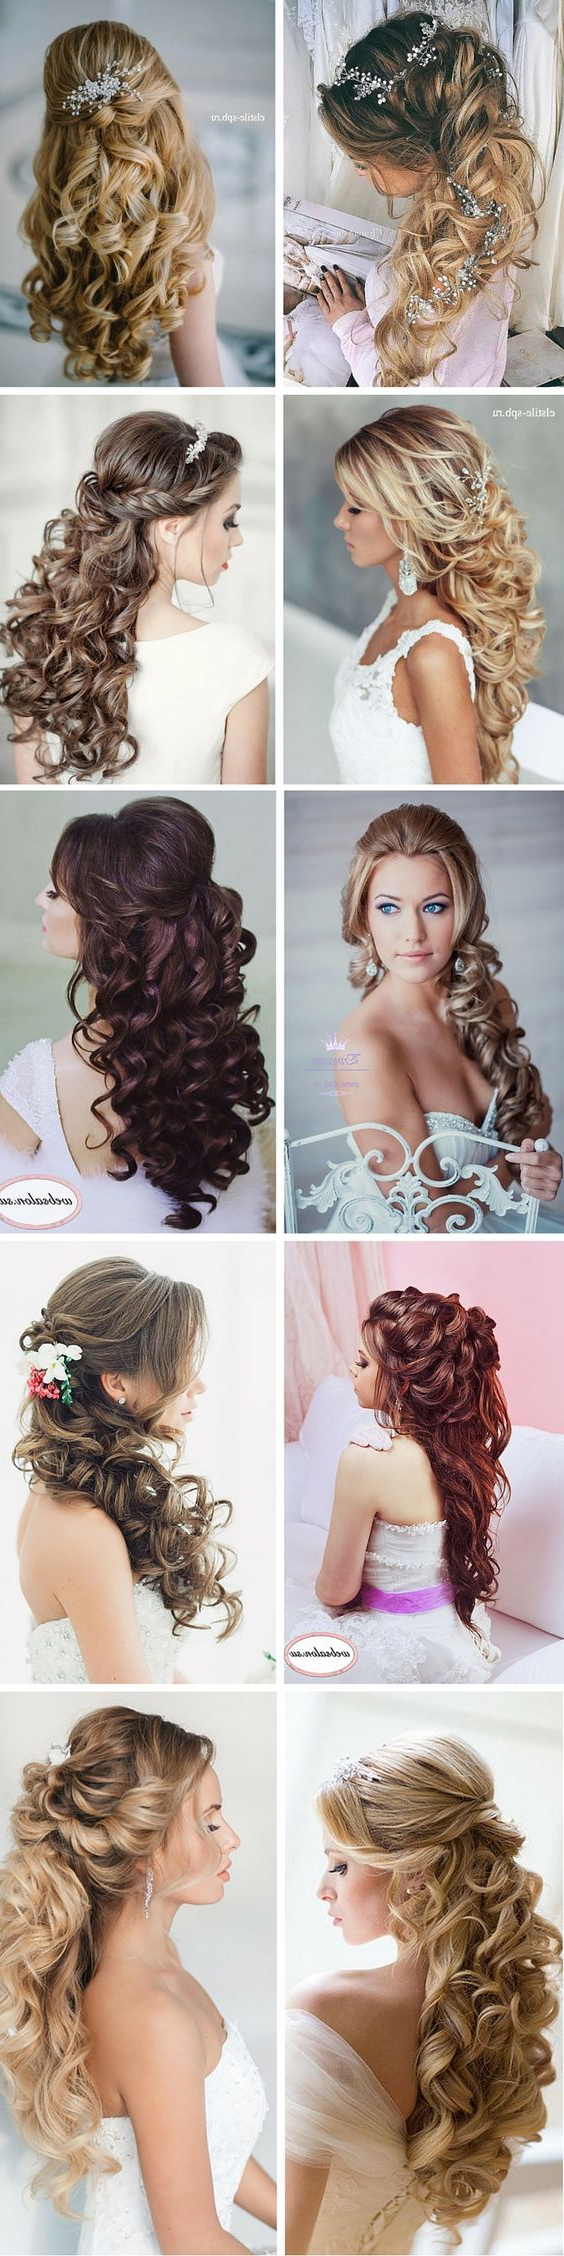 Wedding Hair Archives – Page 7 Of 17 With Regard To Famous Pile Of Curls Hairstyles For Wedding (View 15 of 20)